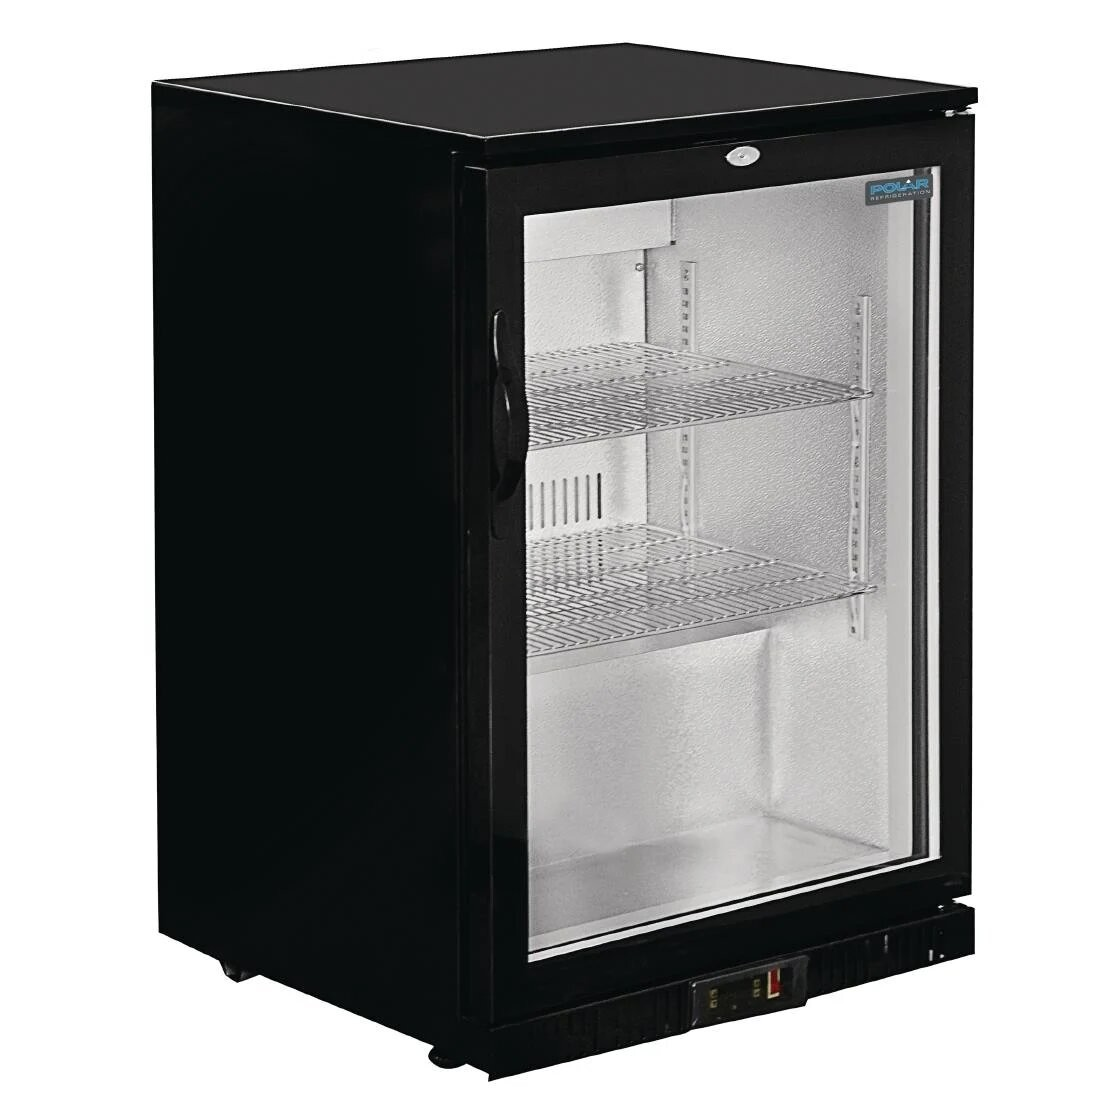 Polar GL001 G-Series Single Hinged Door Black Cooler with LED Lighting